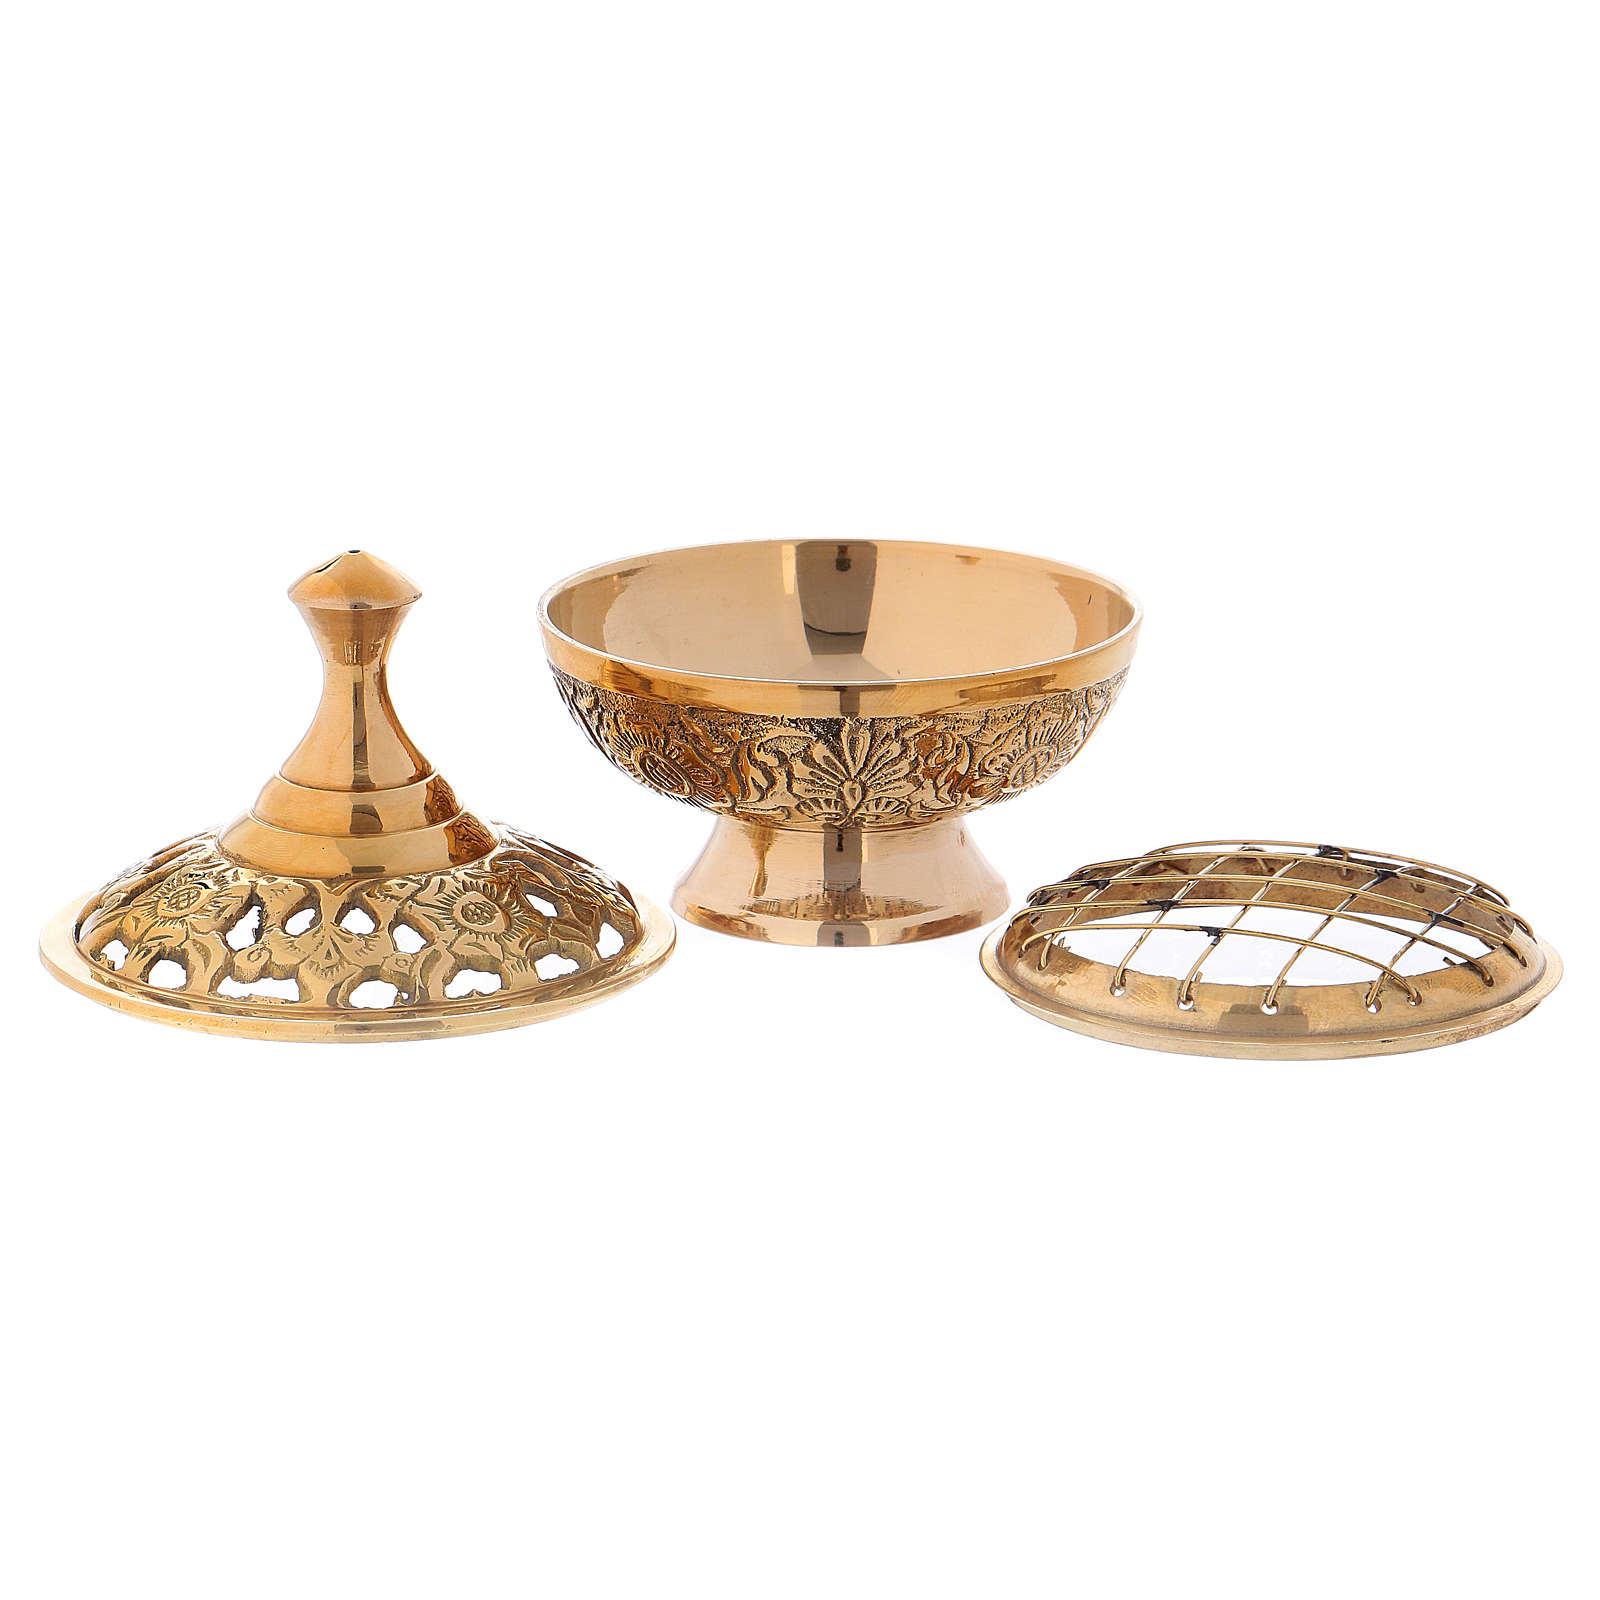 Incense burner in gold-plated brass with decorated lid h. 10 cm 3